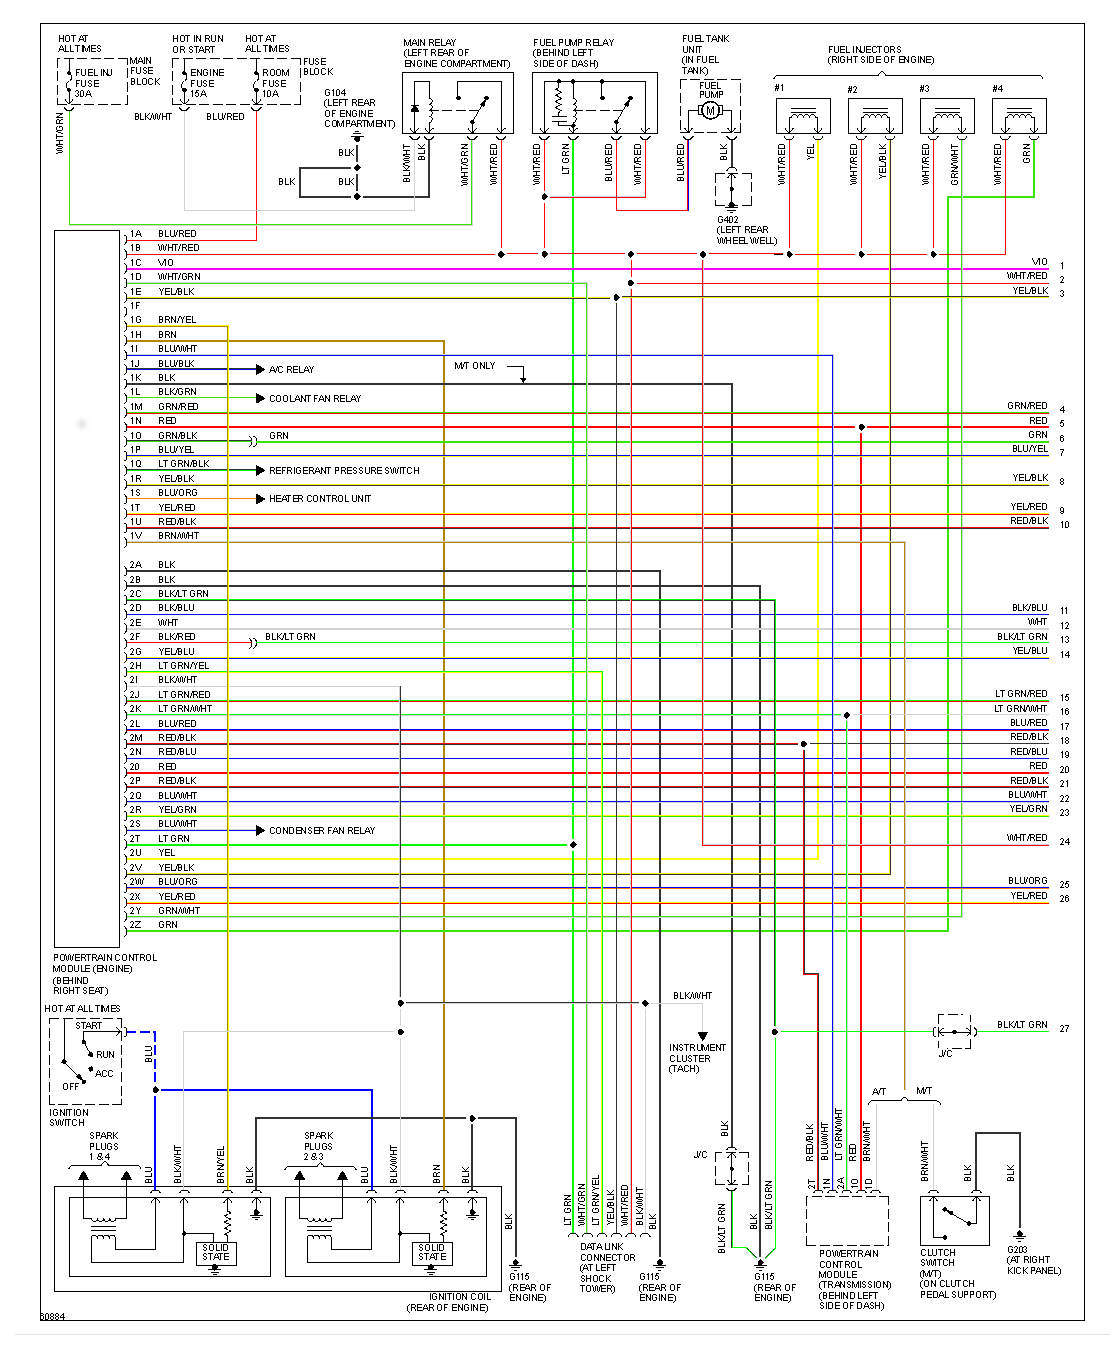 DIAGRAM] 2003 Miata Wiring Diagram FULL Version HD Quality Wiring Diagram -  SXEDIAGRAMMA.GSXBOOKING.ITsxediagramma.gsxbooking.it